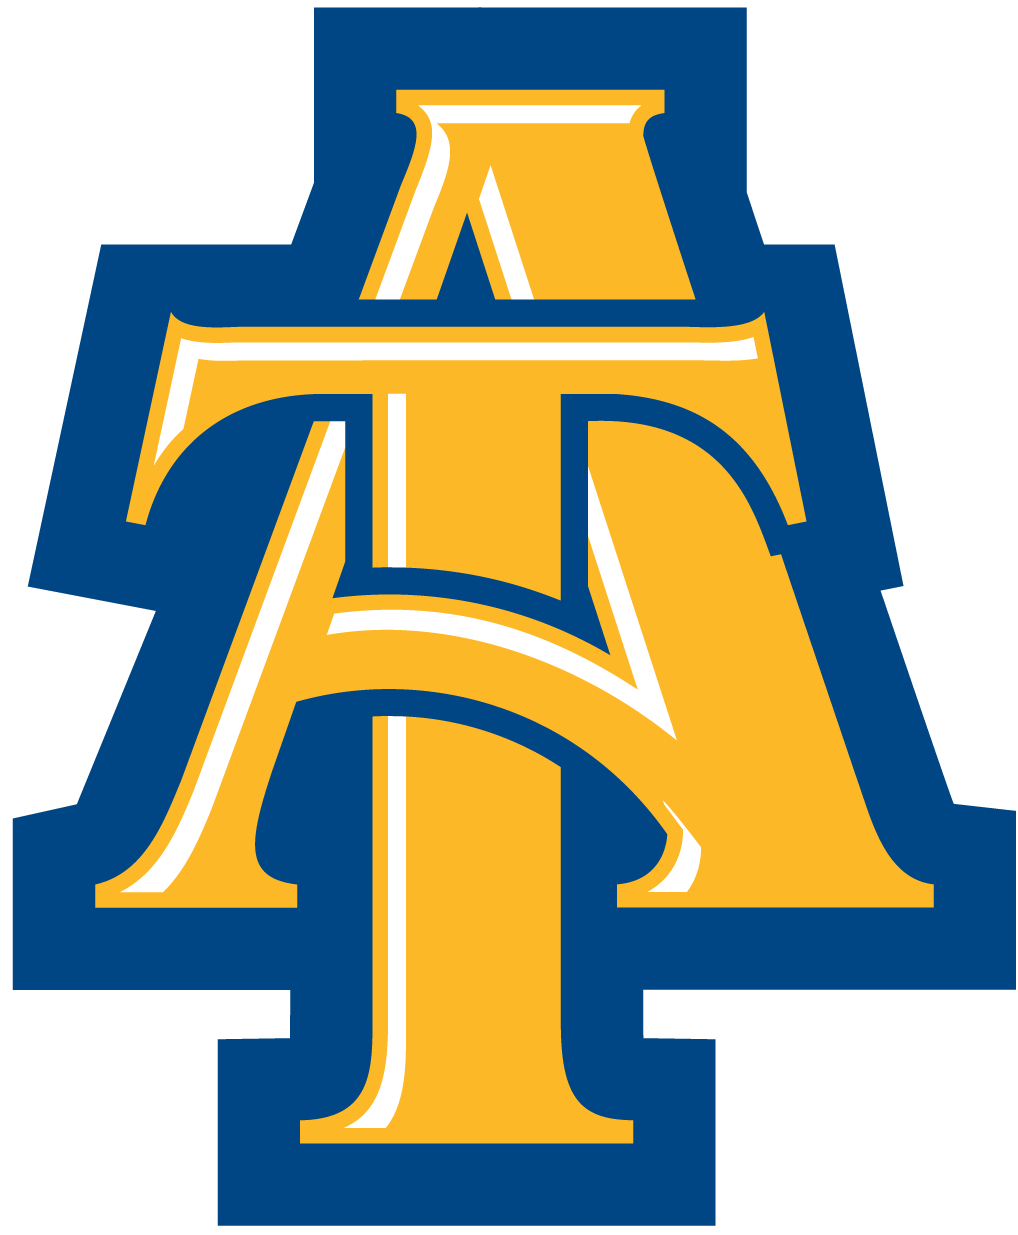 Unc basketball clipart jpg library library North Carolina A&T - Anthony Travel jpg library library